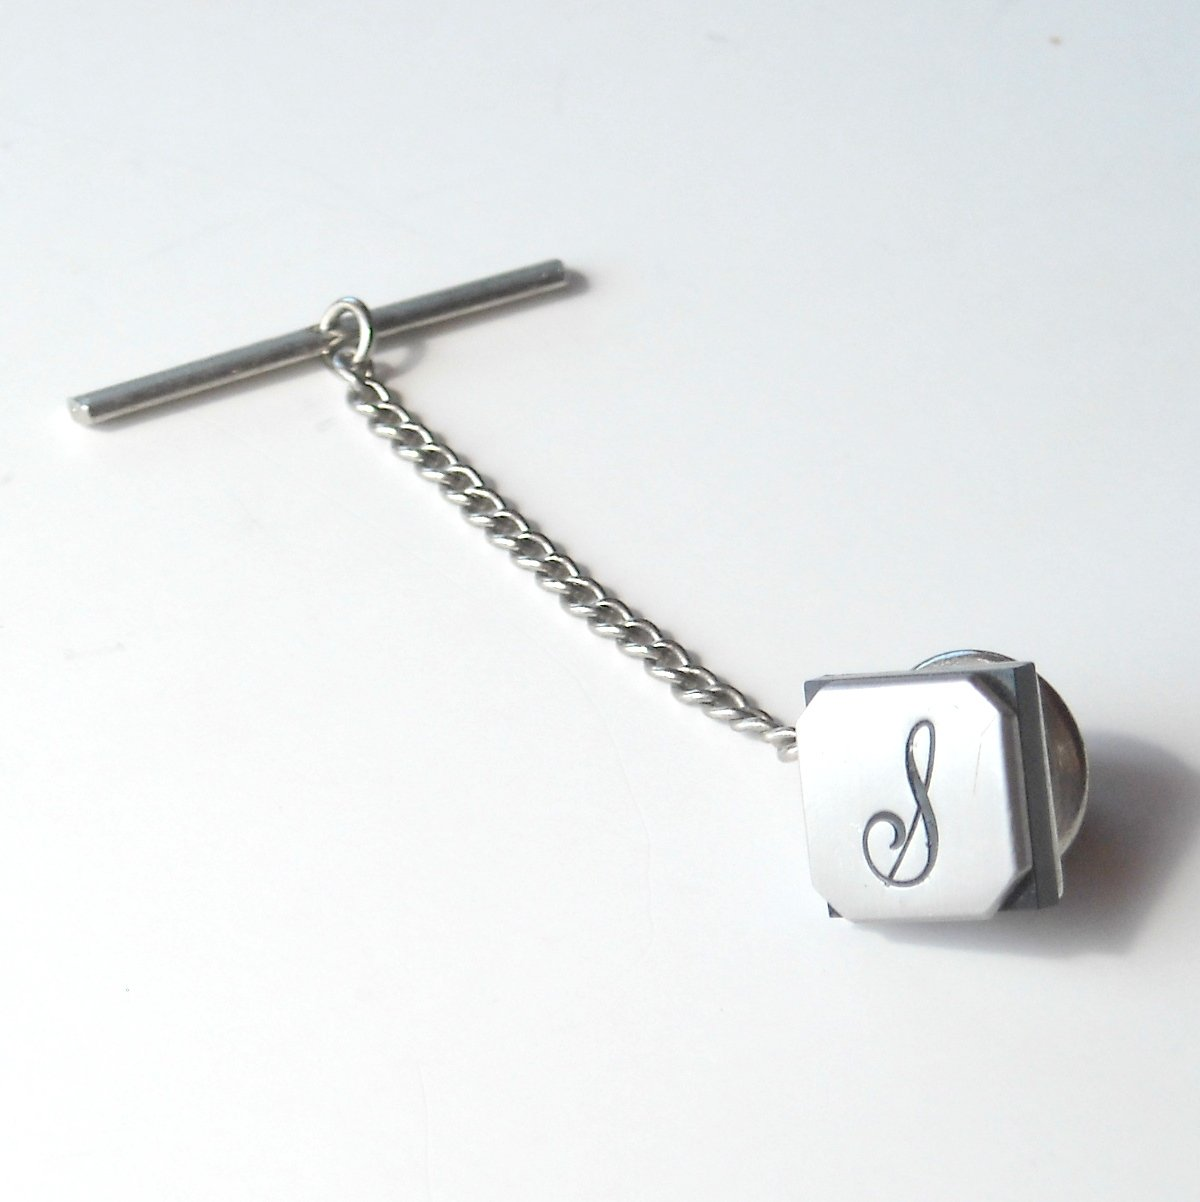 Vintage Swank Square Cursive Uppercase S Silver color alloy necktie tack clutch pin